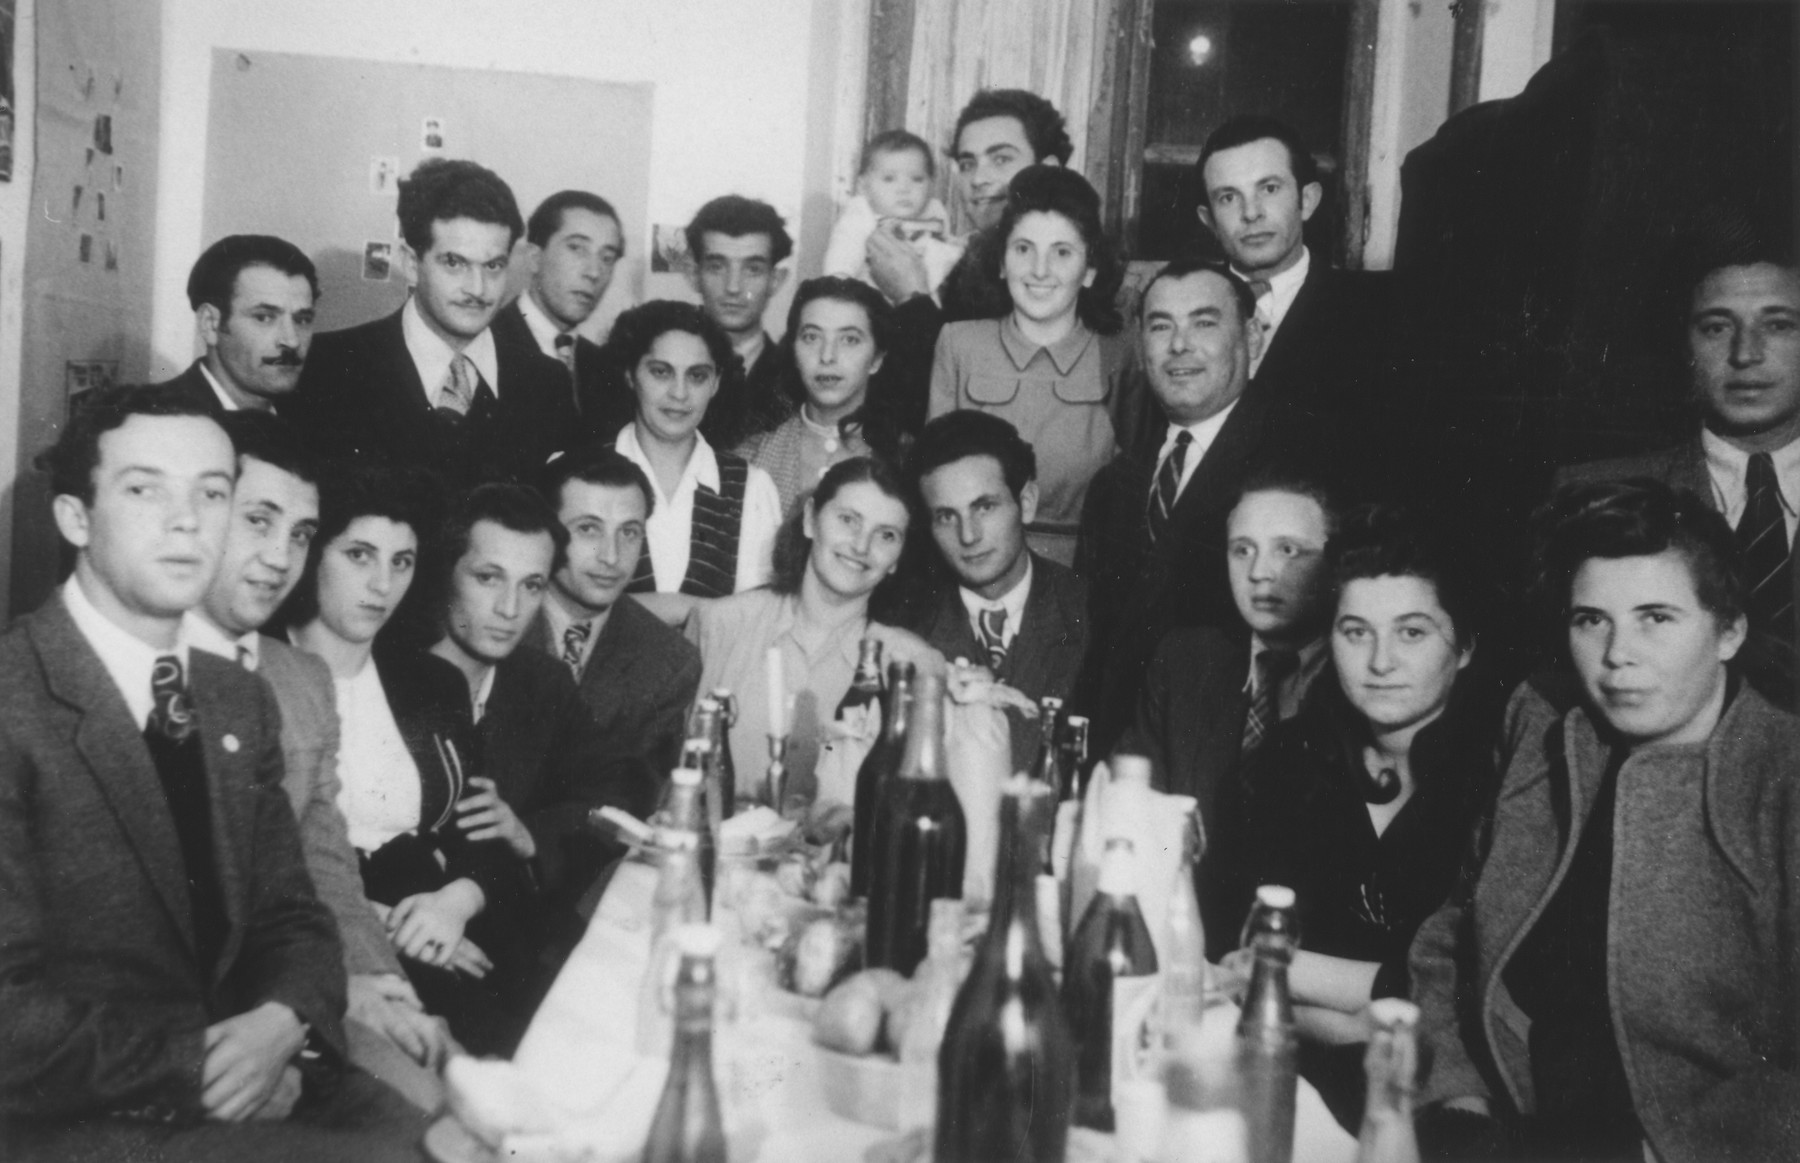 A group of friends celebrates the wedding of  Jacob and Miriam Schwimmer in the Bari dispaced persons camp.   Among those pictured is Jerome (Jacob) Hollander, seated second from the left.